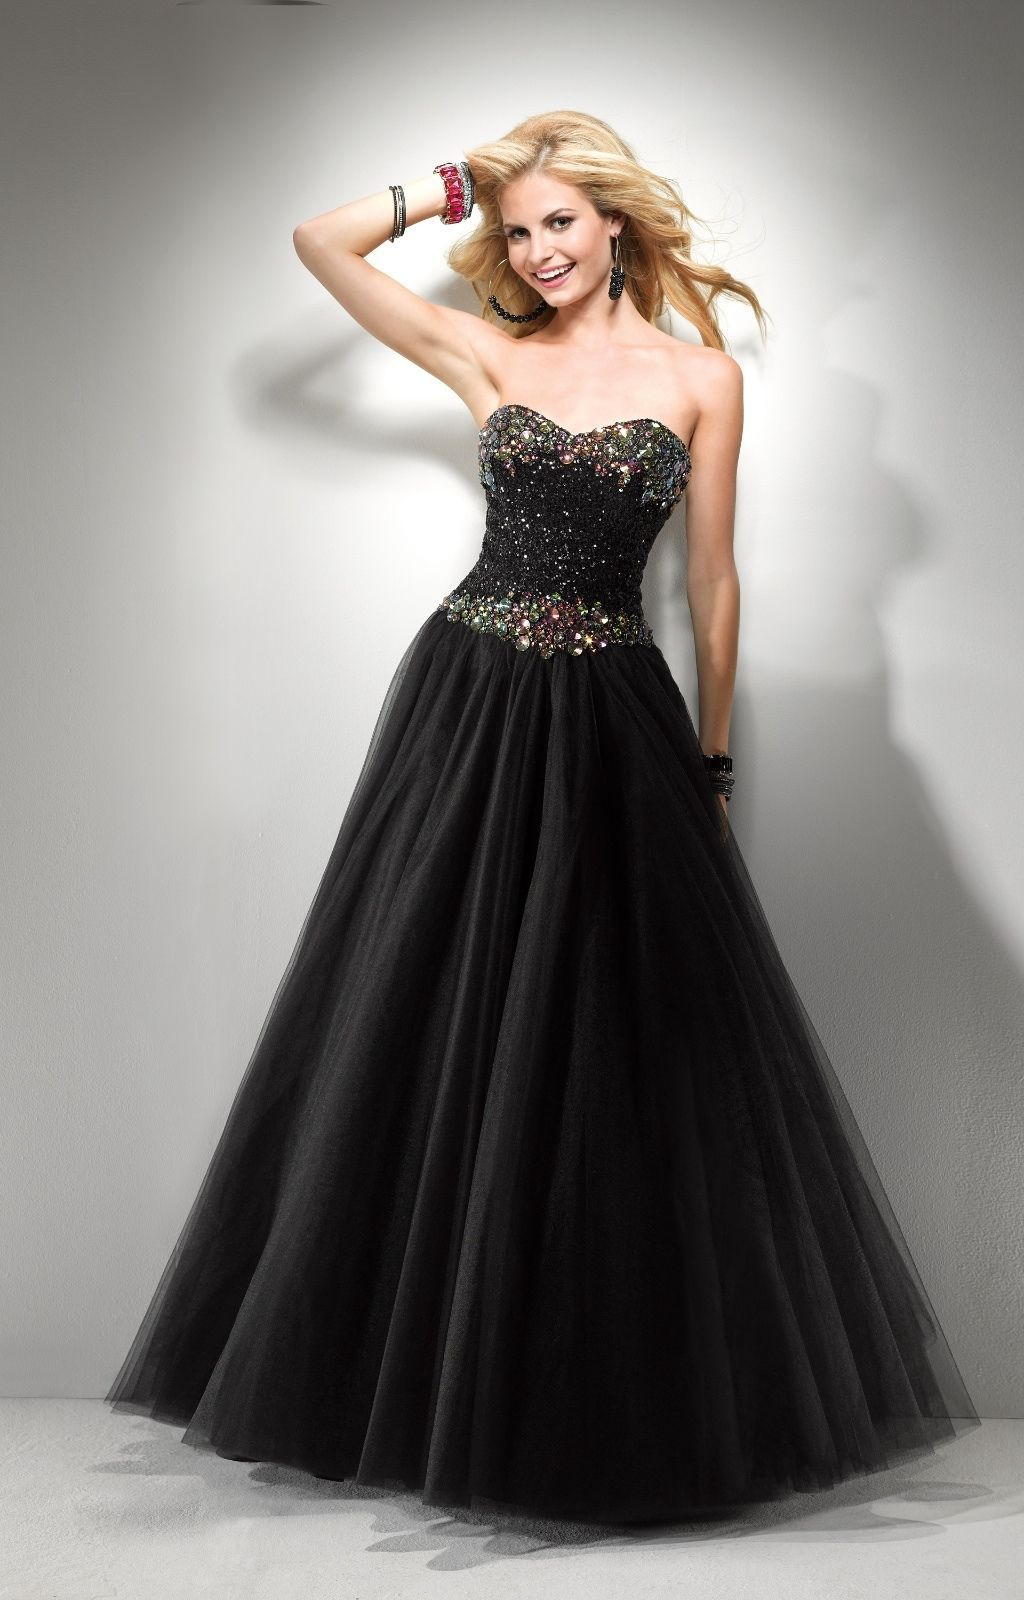 Image 1 of Sexy Strapless Black or Pink Beaded Prom Pageant Evening Gown Dress, Flirt 5794